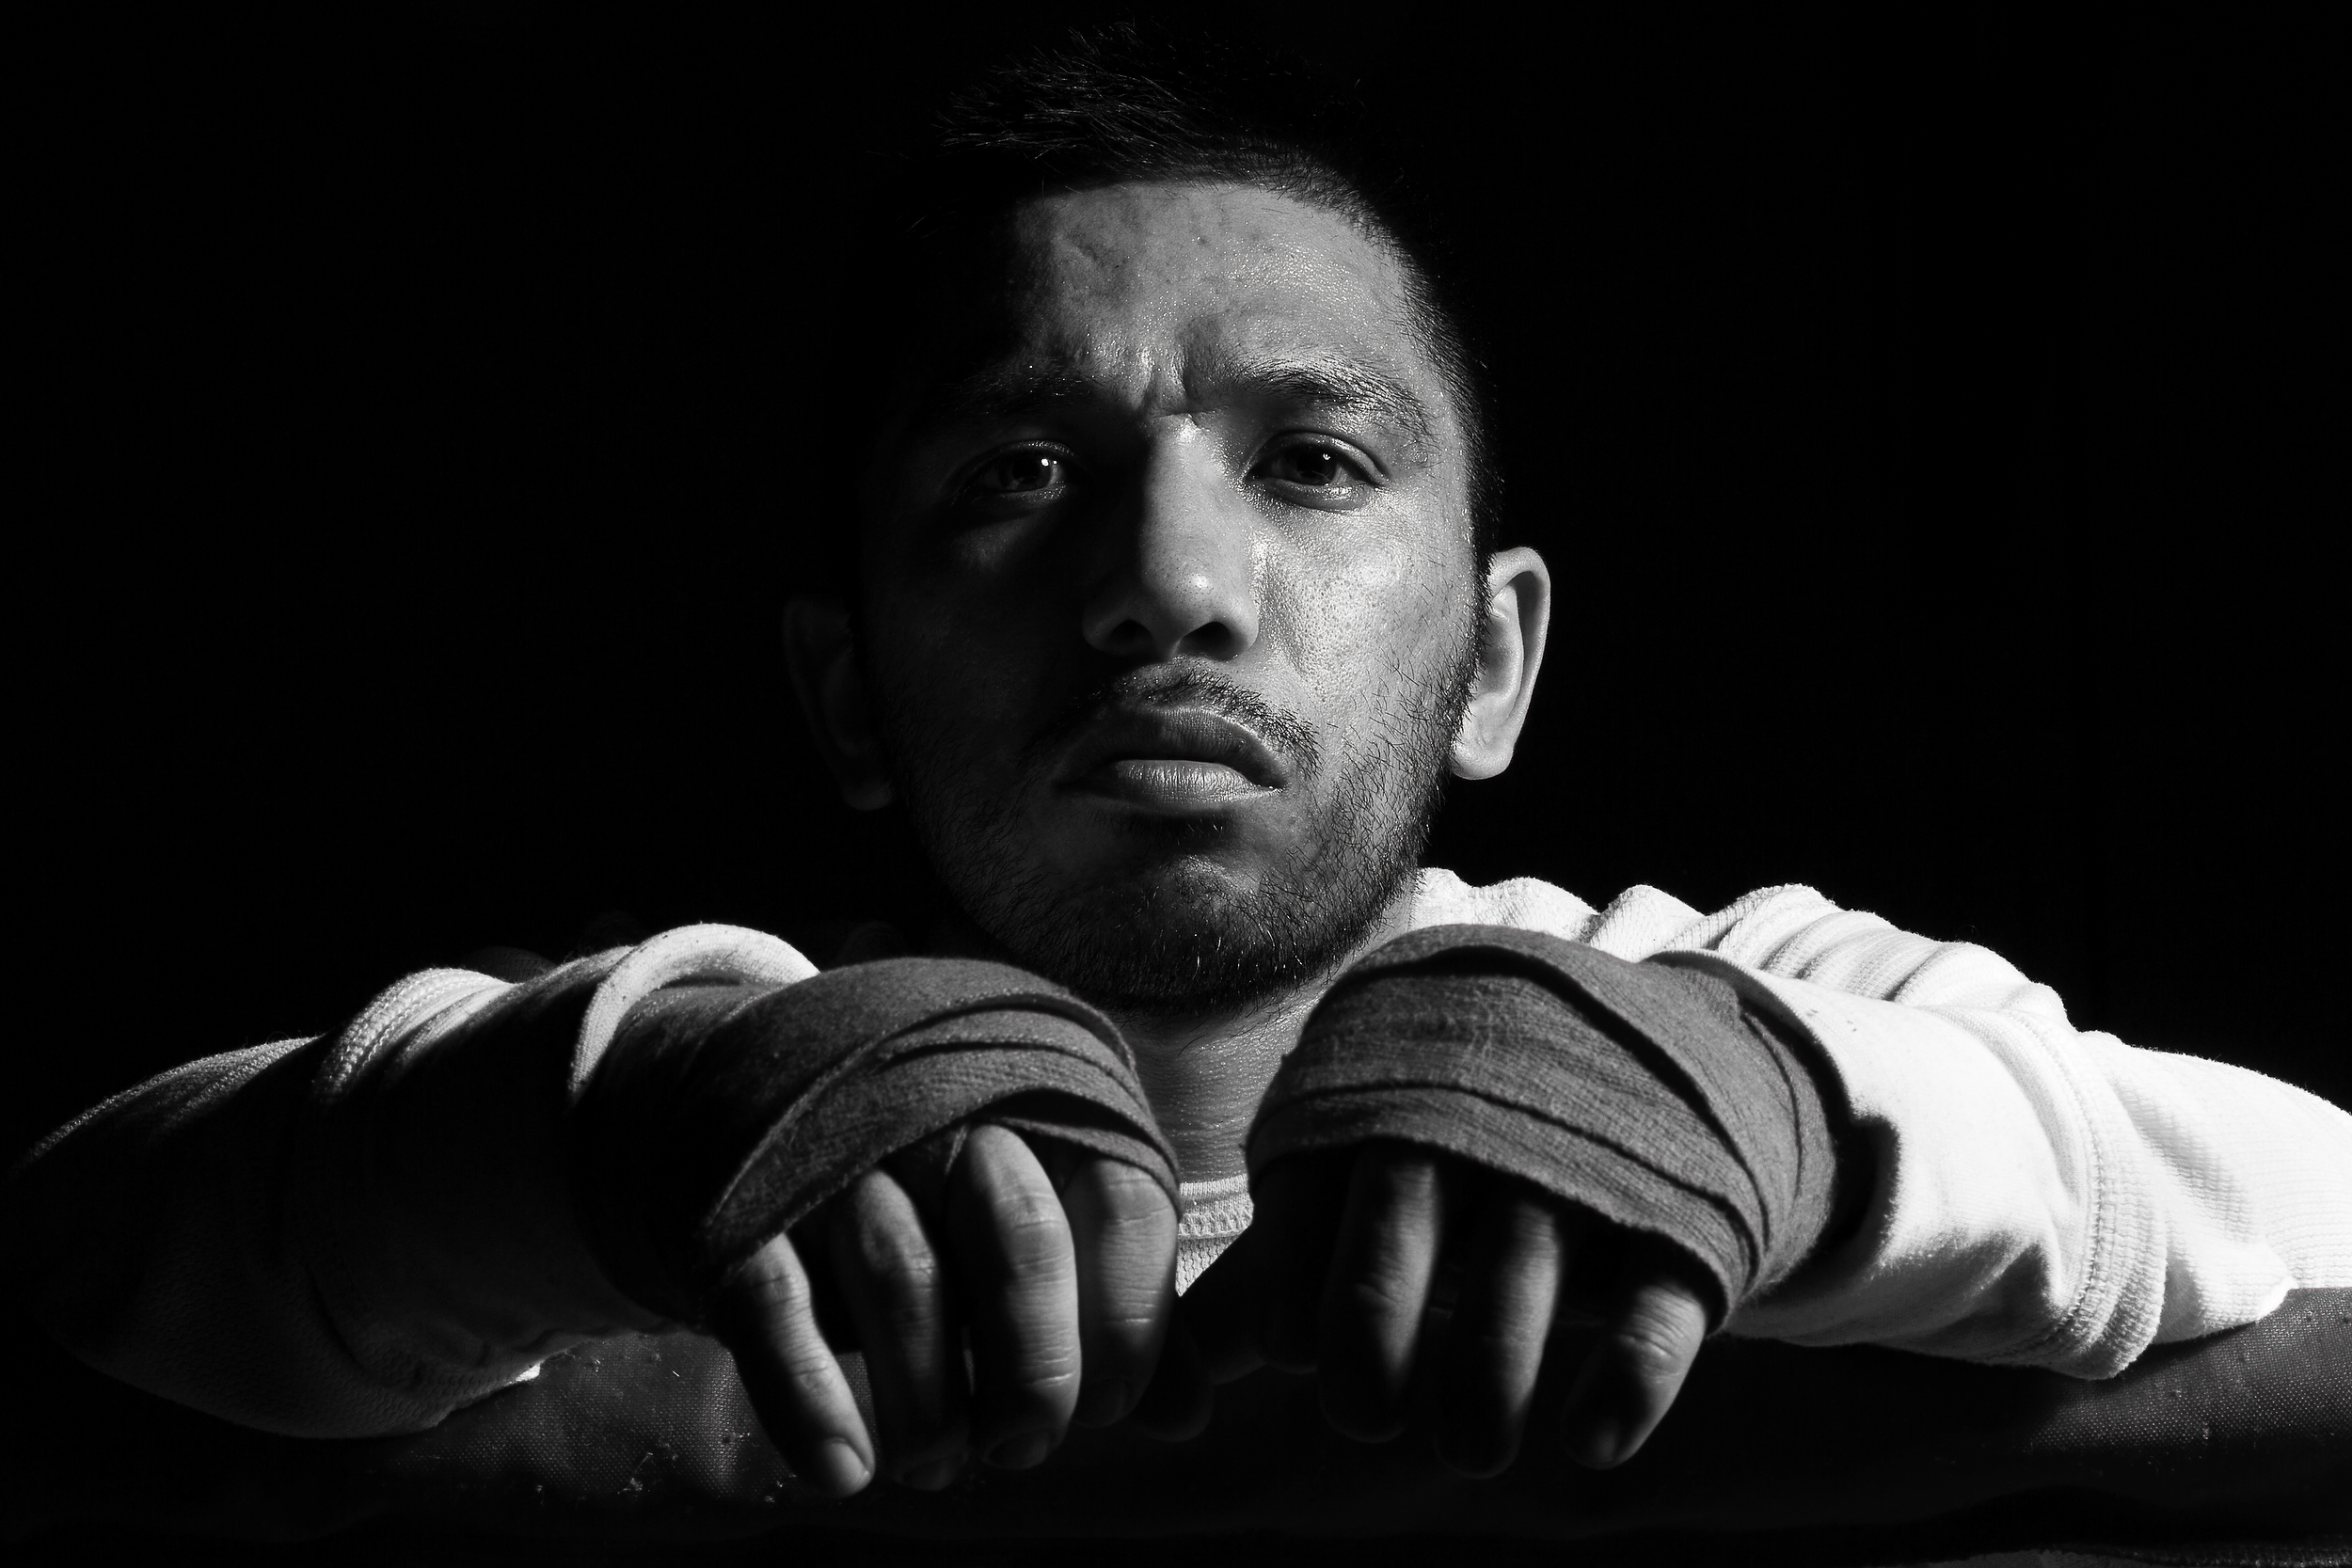 """Santiago """"Santos"""" Garcia is photographed at Eastside Boxing Club in Kalamazoo, Mich. on May 17, 2016. Garcia won the Michigan Golden Glove novice class state championship at the 108 pound weight class in 2015 and 2016. (Bryan Bennett 